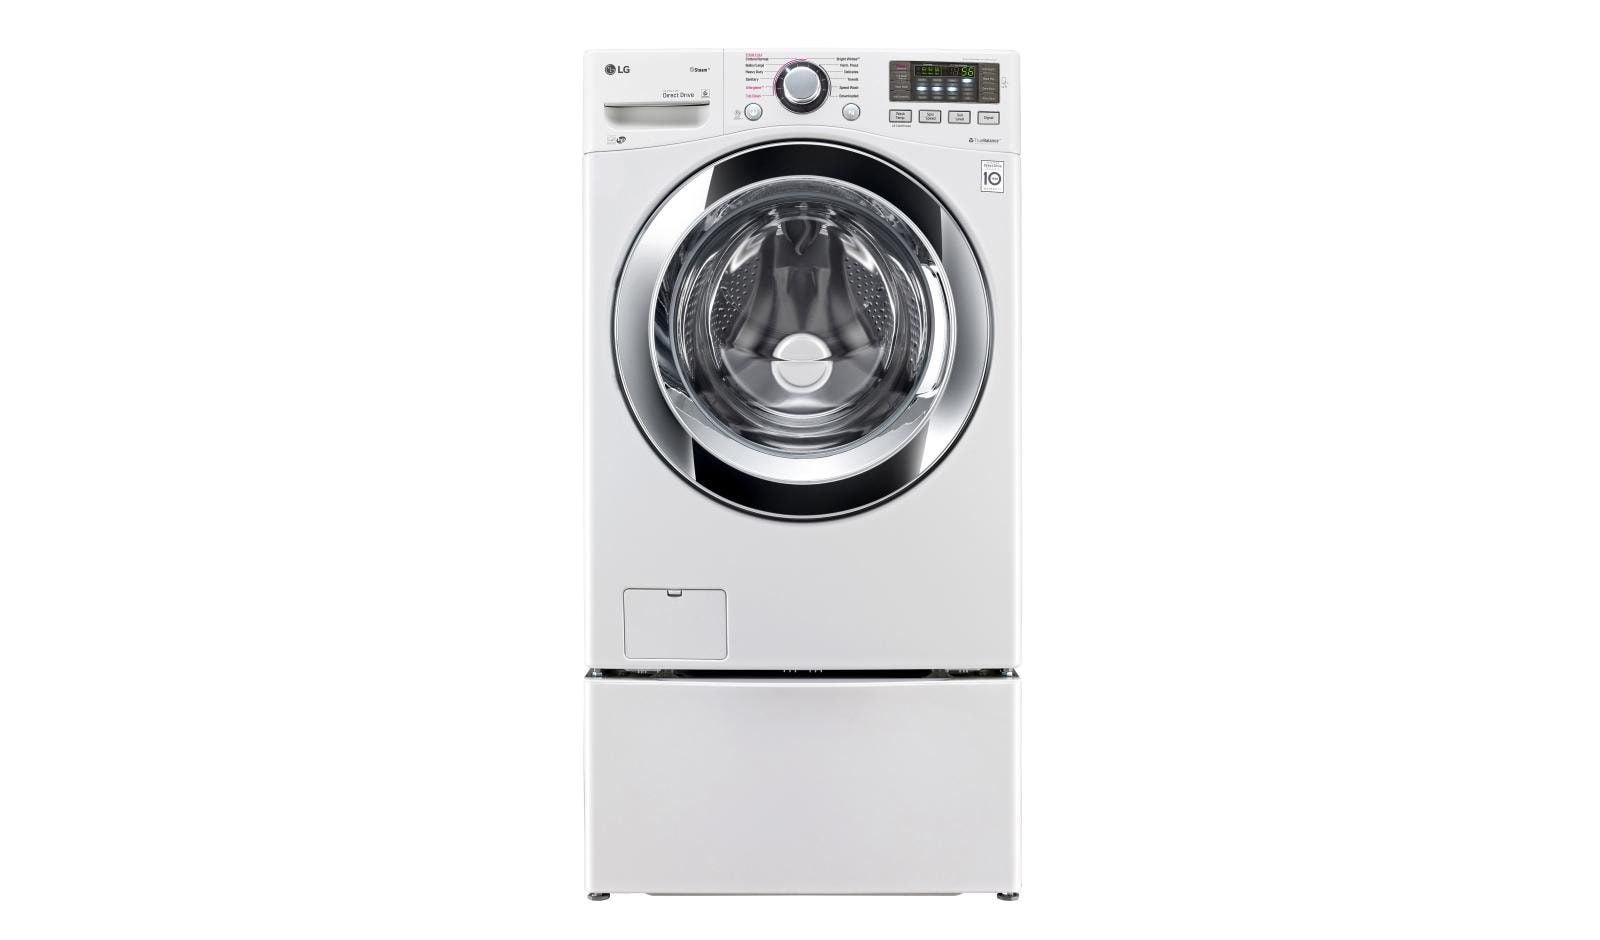 lg wm3670hwa ultra large front load smart thinq steam washer lg usa rh lg com LG Washer WM2016CW Parts lg washer wm2016cw repair manual